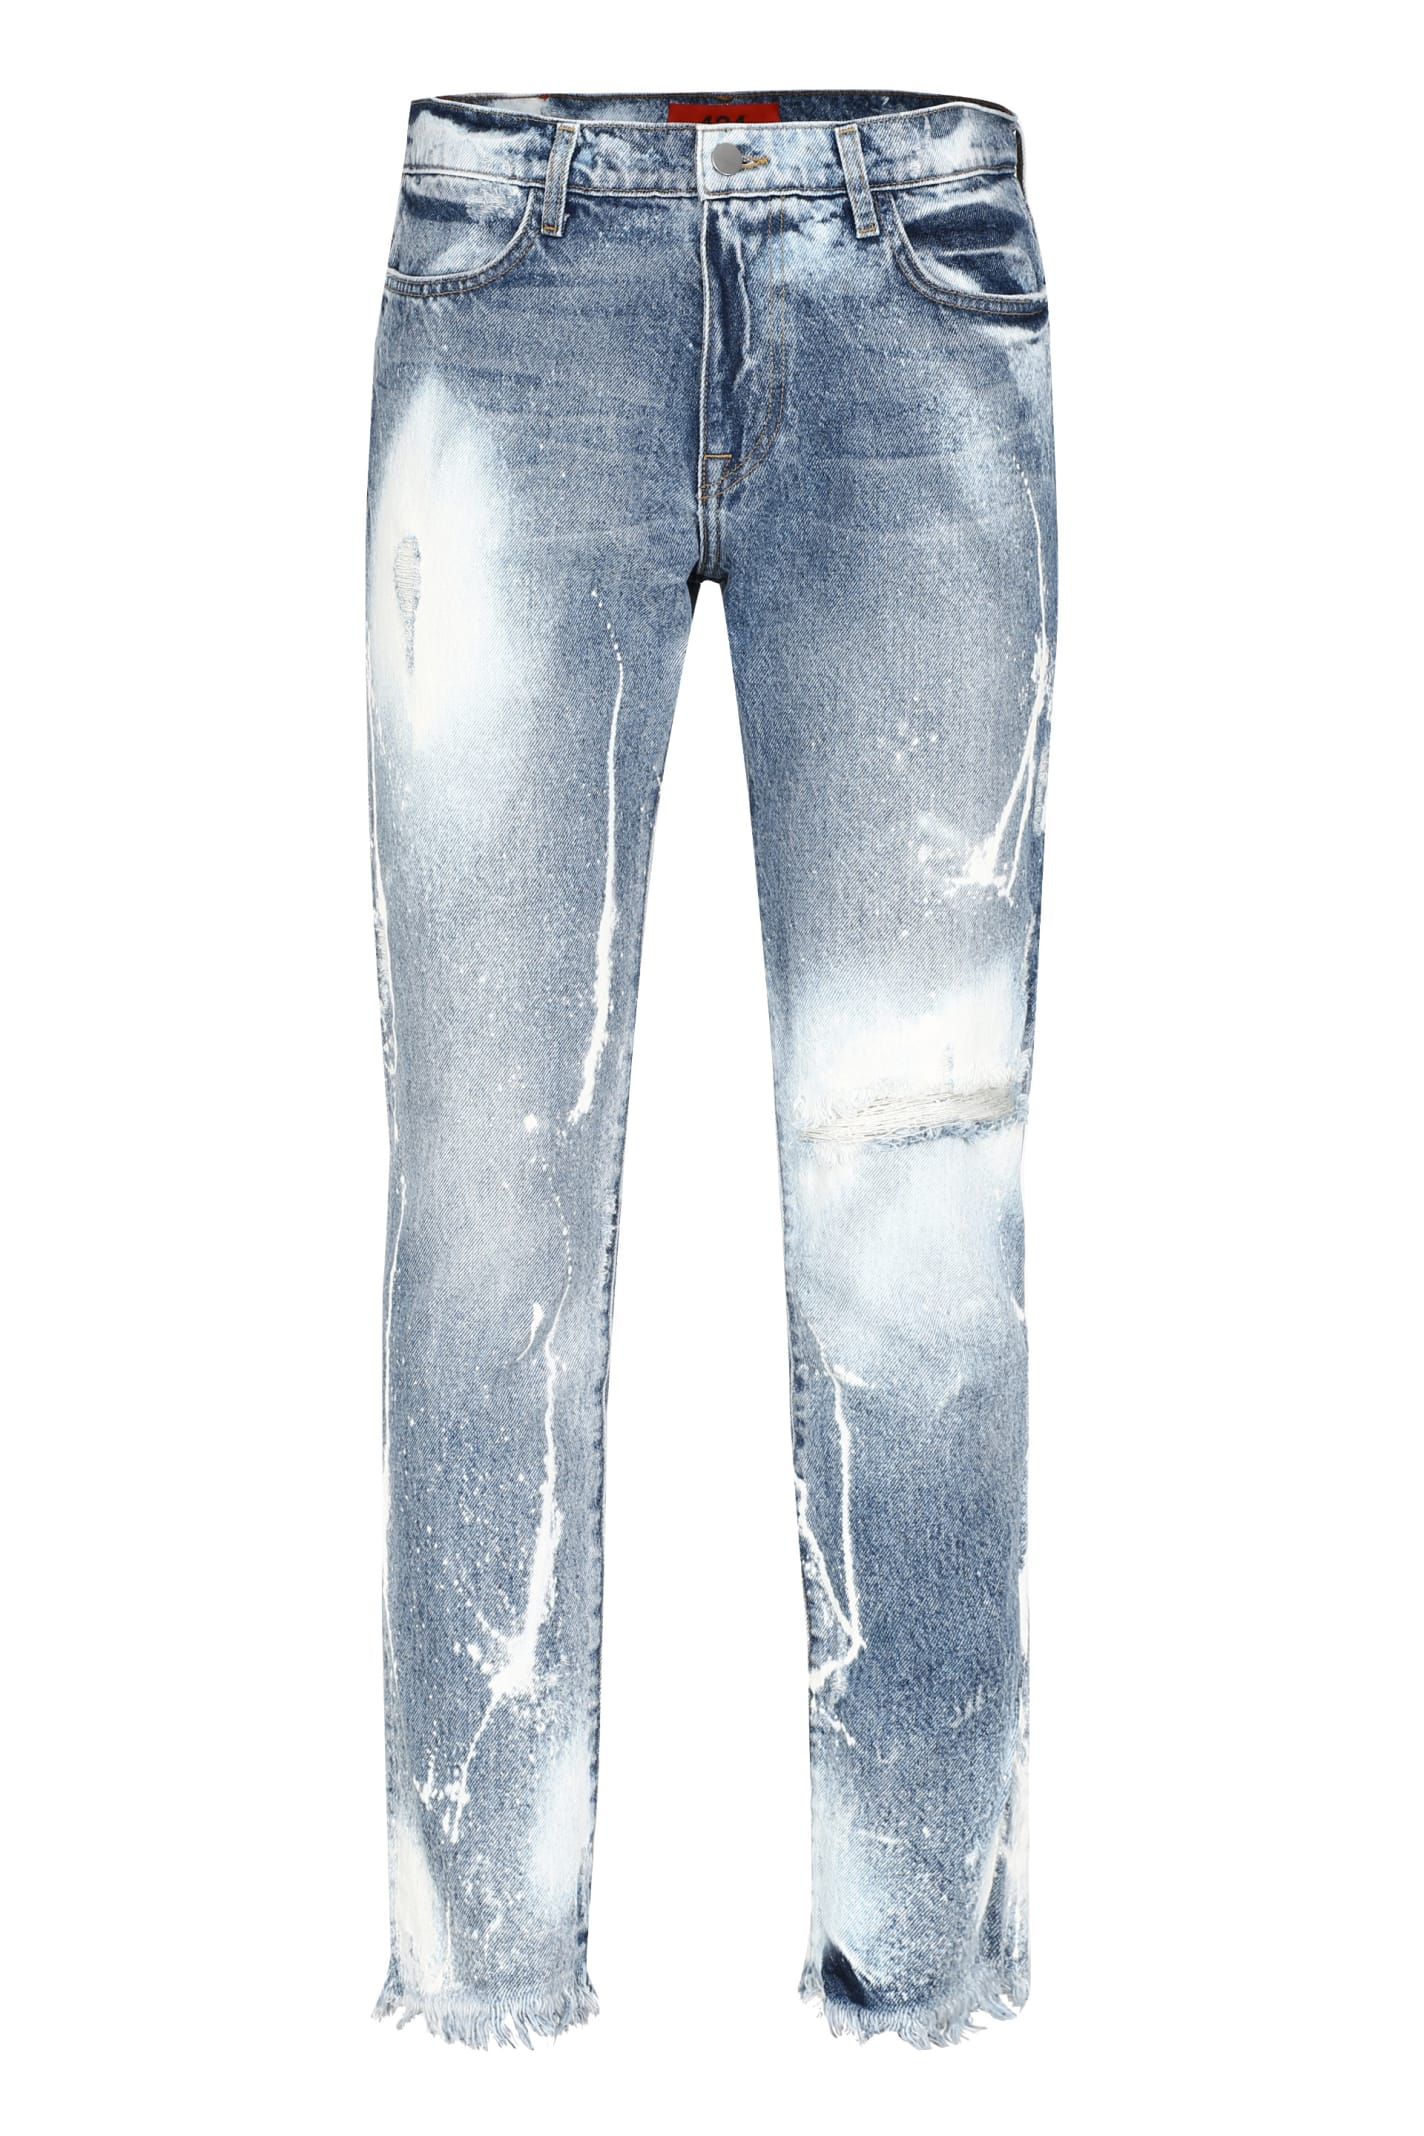 FourTwoFour on Fairfax Distressed Slim Fit Jeans